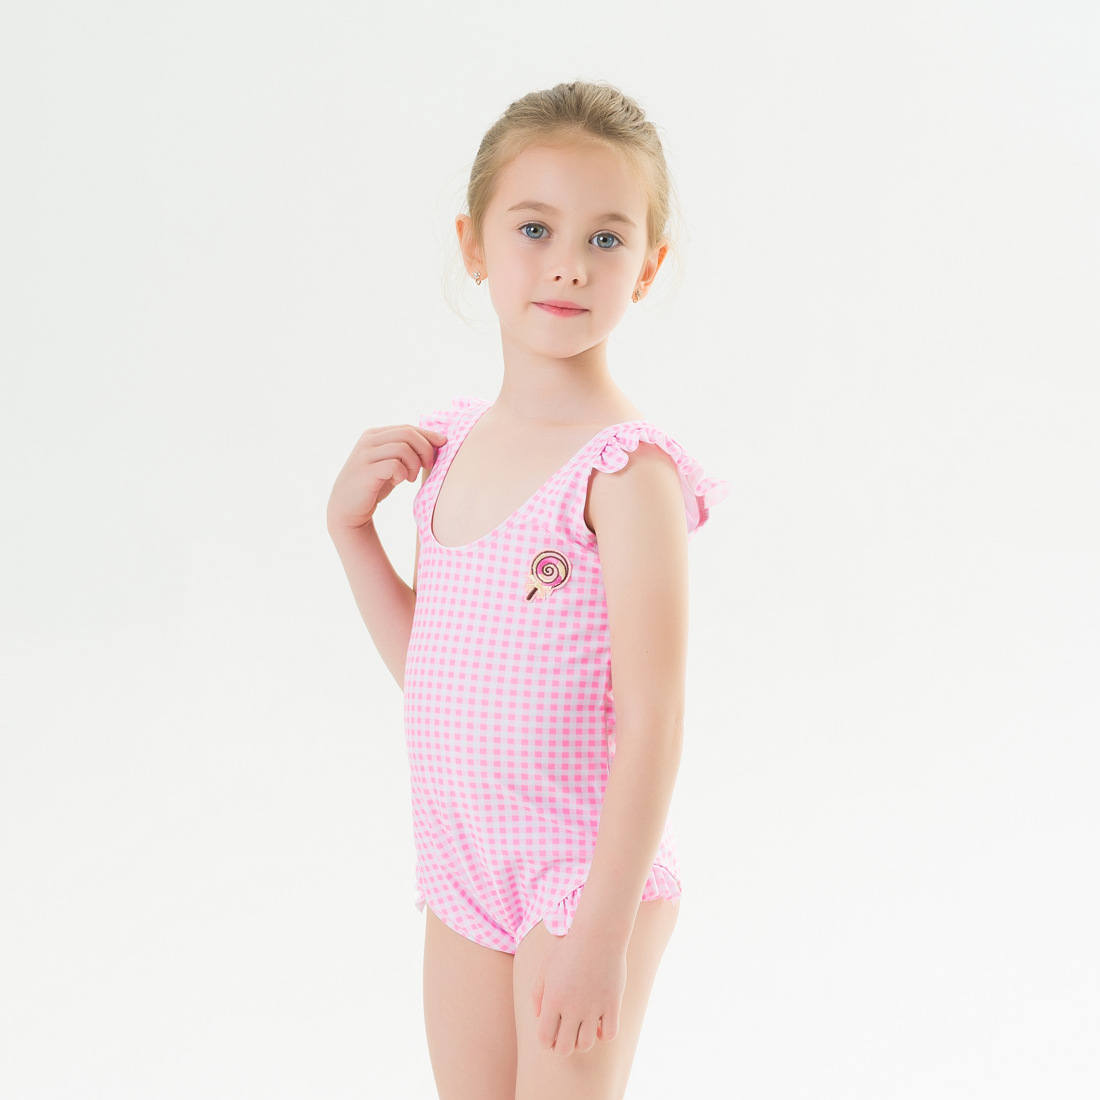 Batch New Style Children Lattice Baby Bathing Suit KID'S Swimwear One-piece Europe And America GIRL'S Tour Bathing Suit